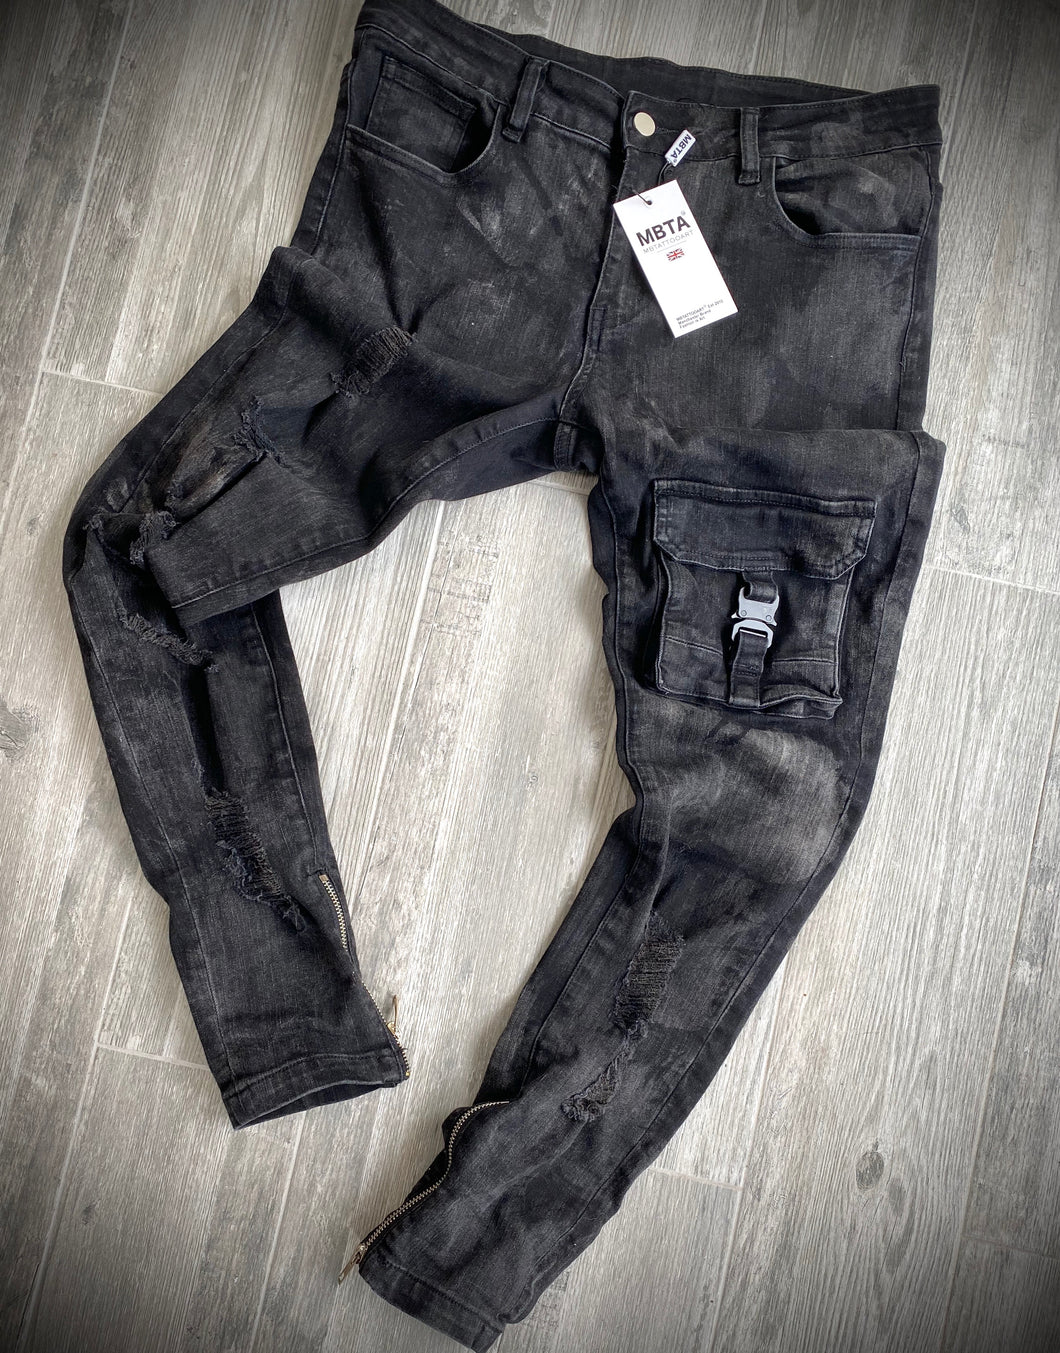 MBTA BLACK SKINNY CARGO POCKET WAXED DENIM JEANS